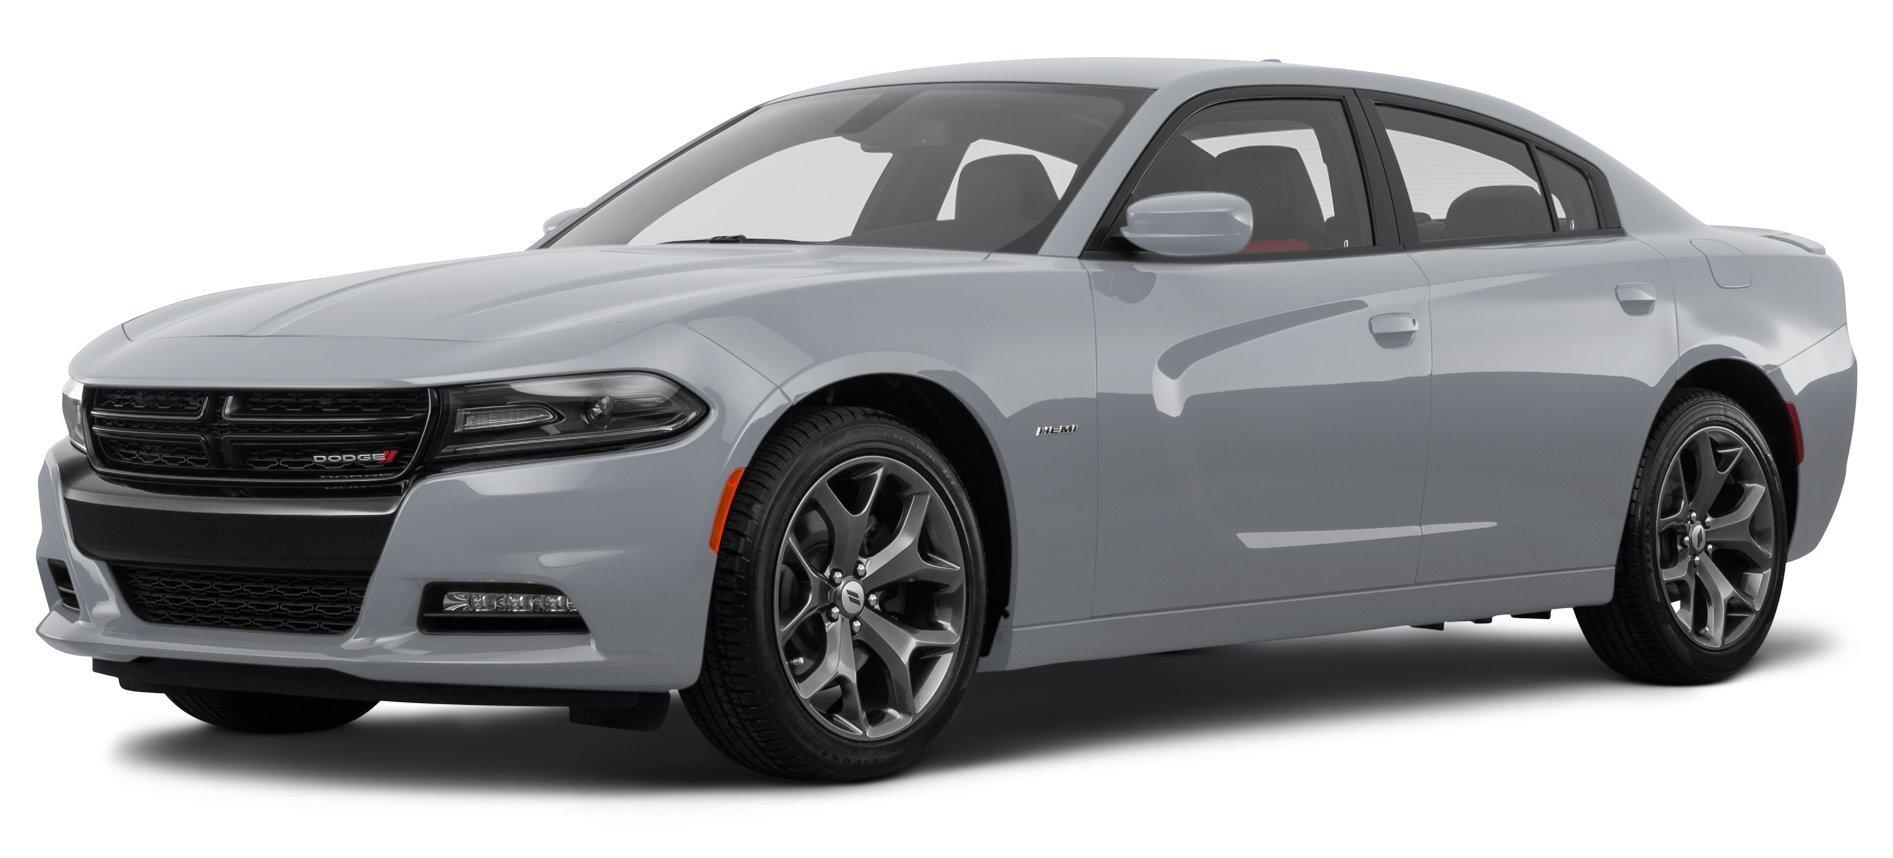 2017 Dodge Charger Reviews Images And Specs Vehicles 1949 R T Daytona 340 Rear Wheel Drive